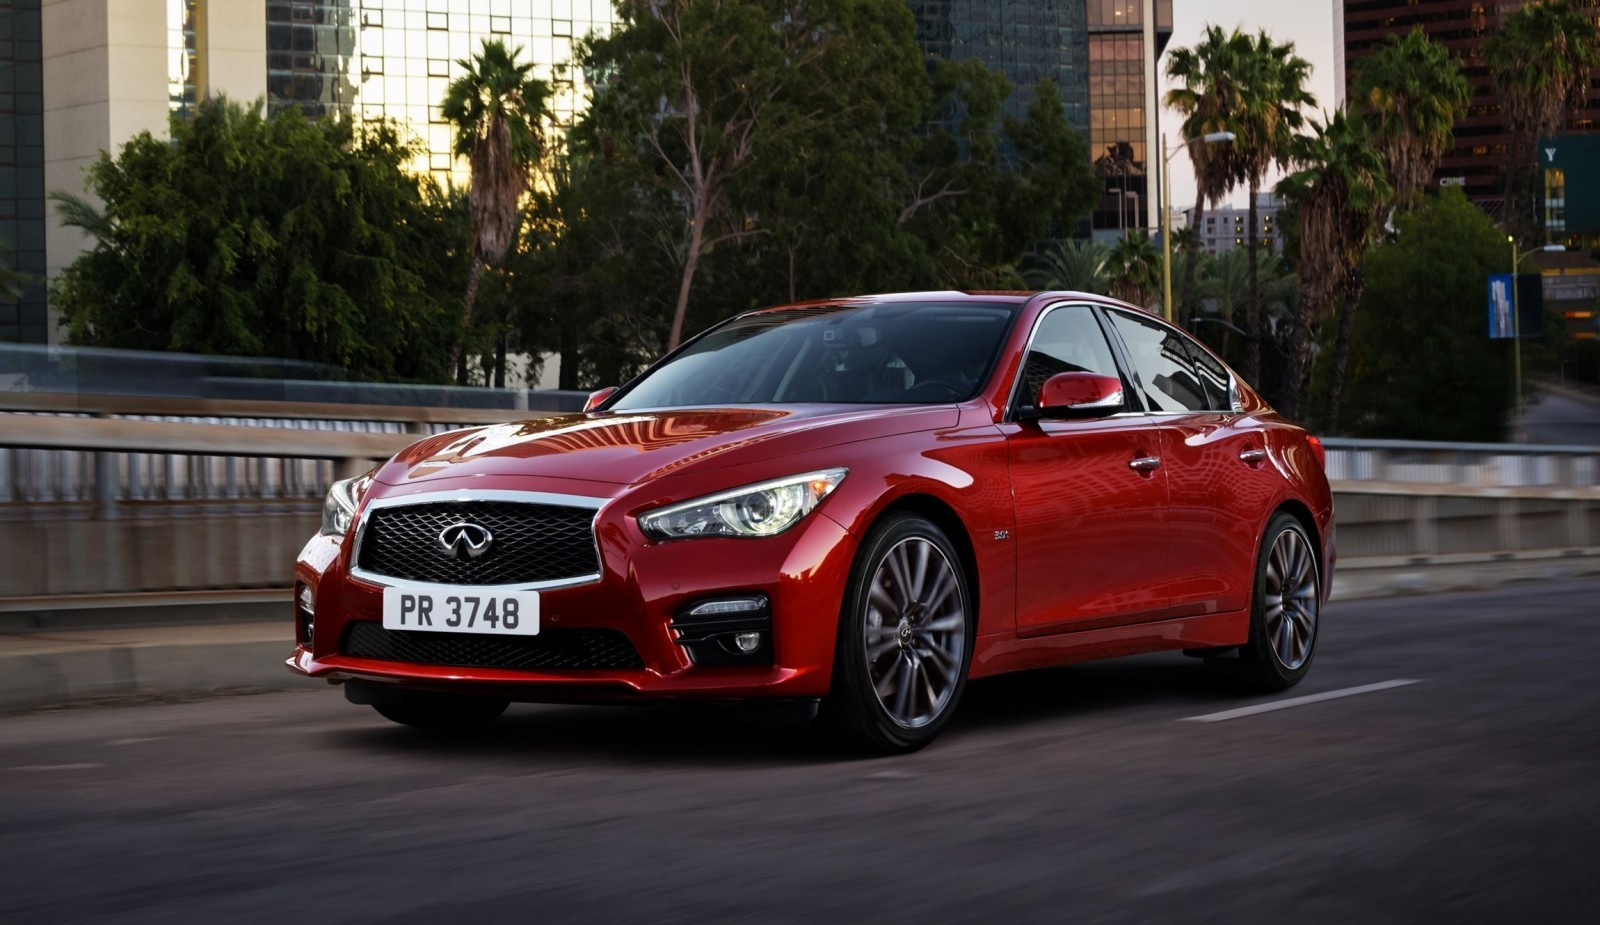 2016 infiniti q50 2 0t road test review by tim esterdahl. Black Bedroom Furniture Sets. Home Design Ideas